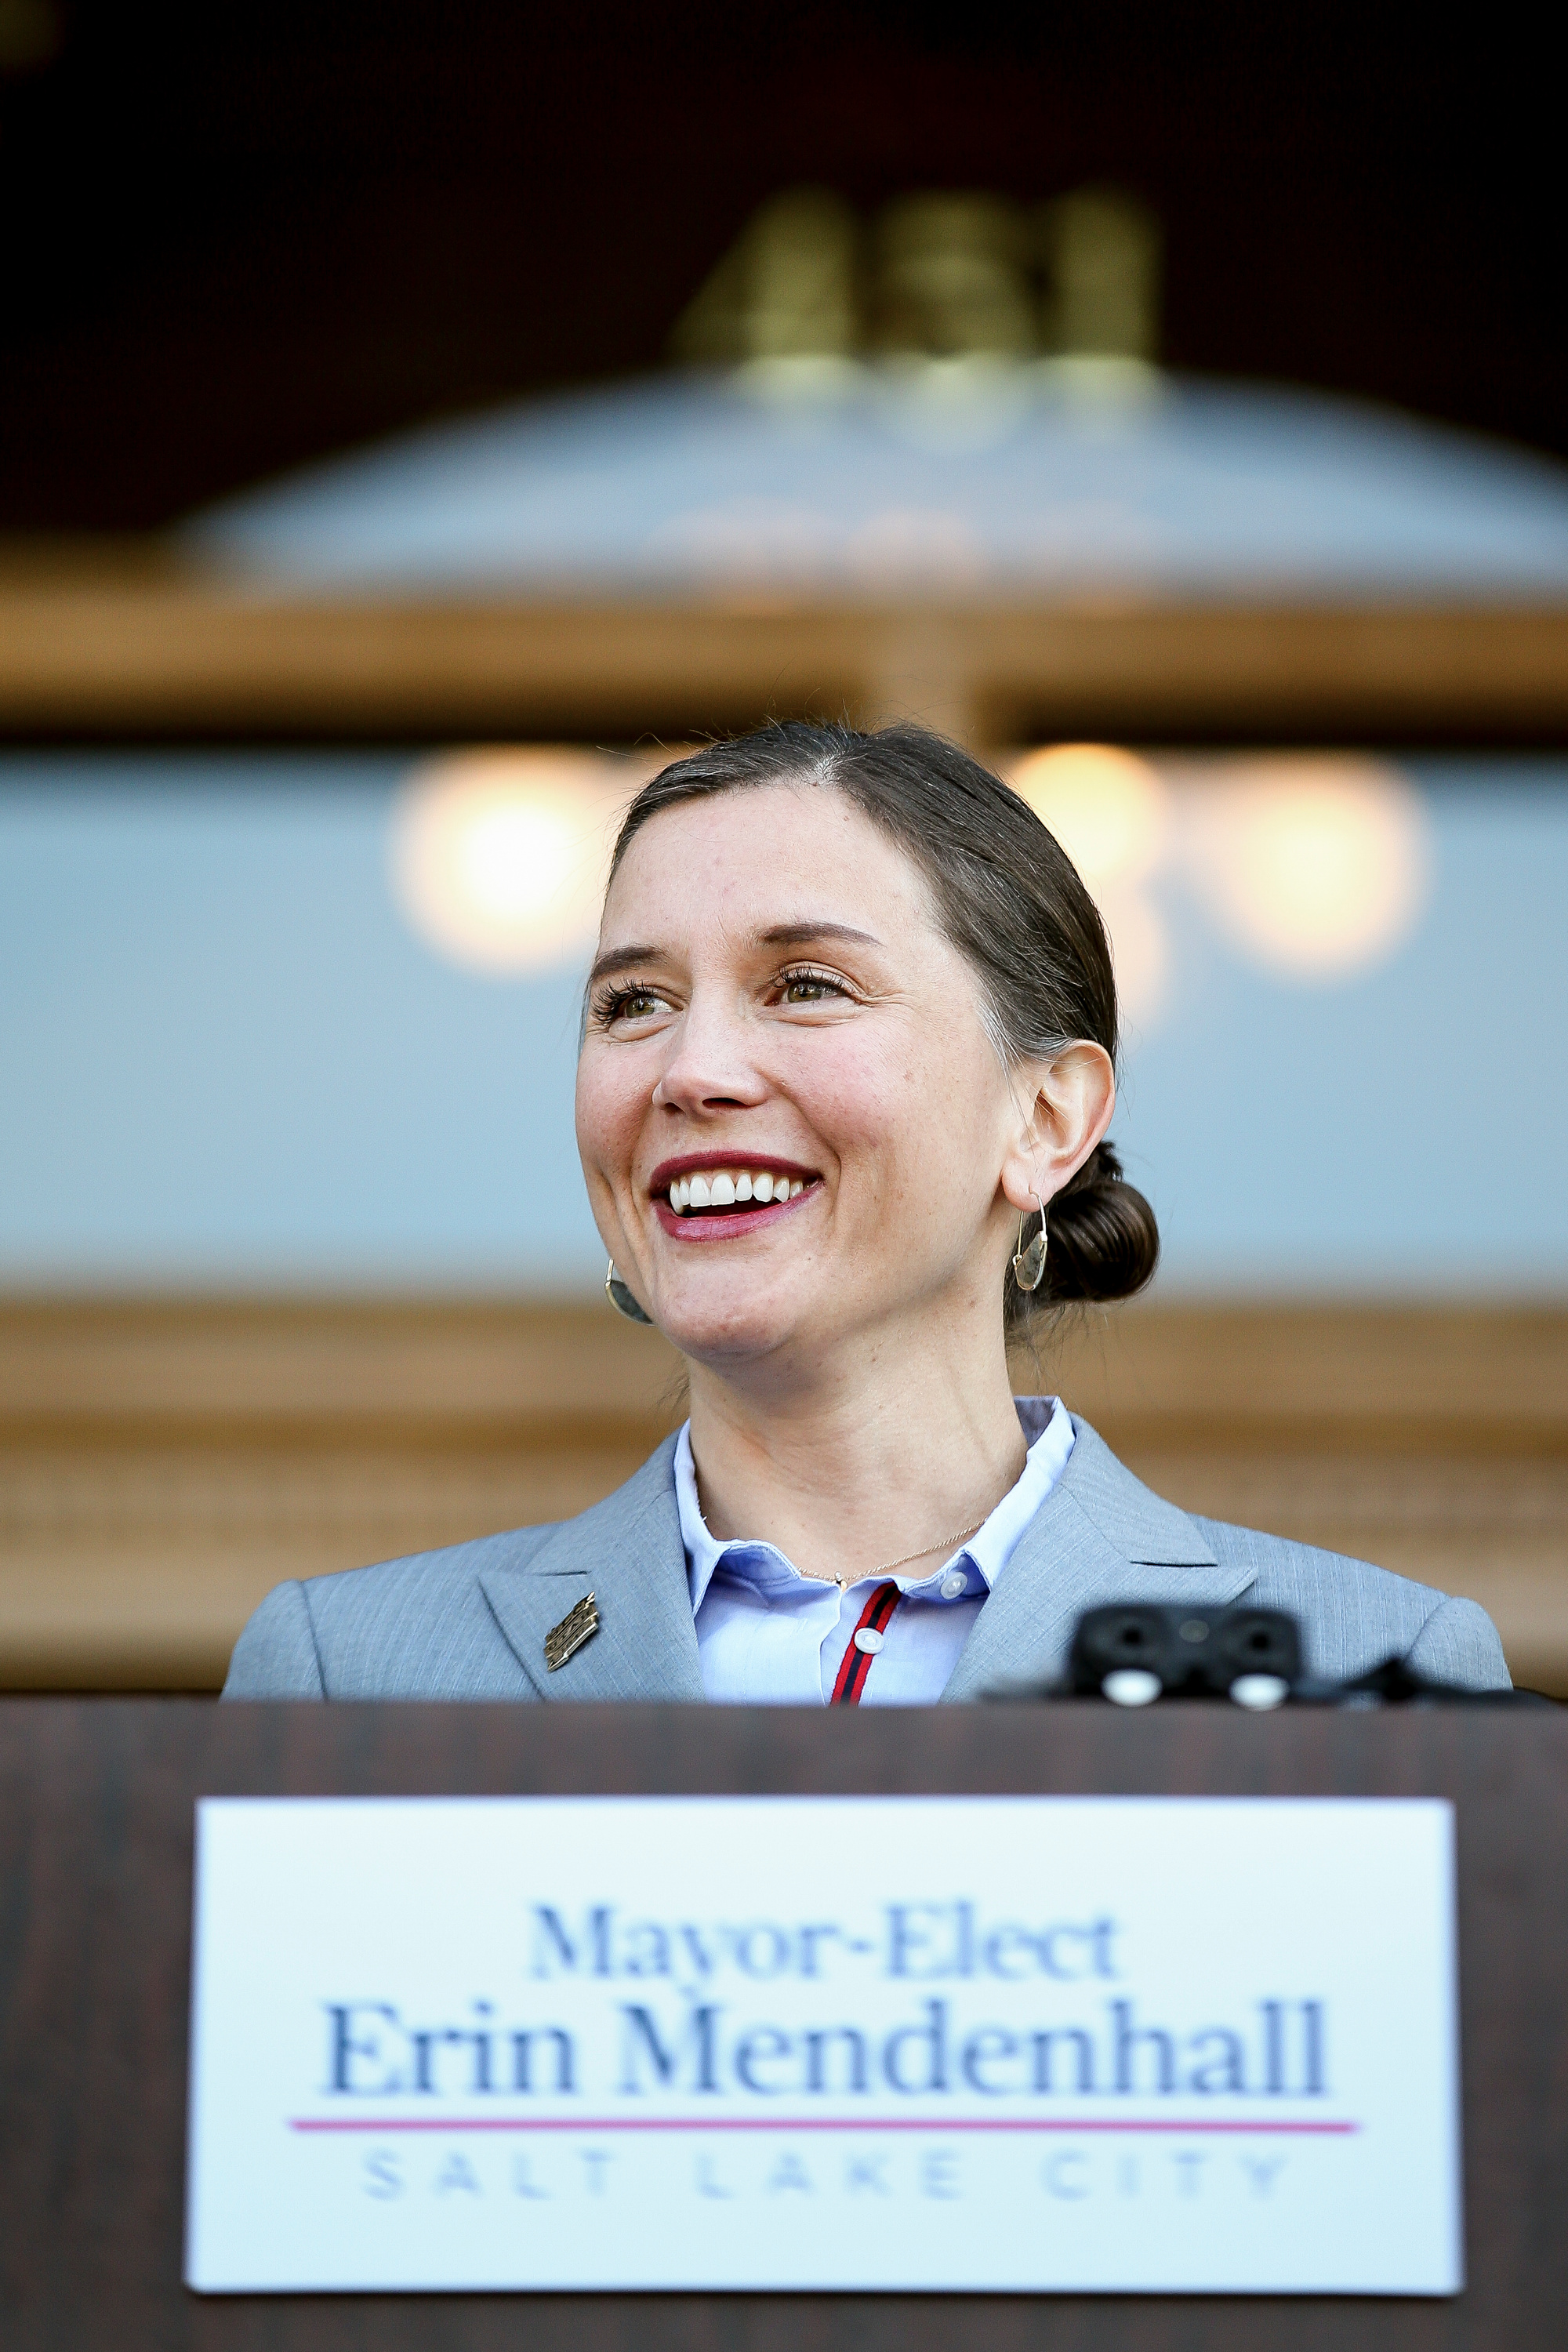 Salt Lake City Mayor-elect Erin Mendenhall holds a press conference at the City-County Building on Thursday, Nov. 7, 2019.